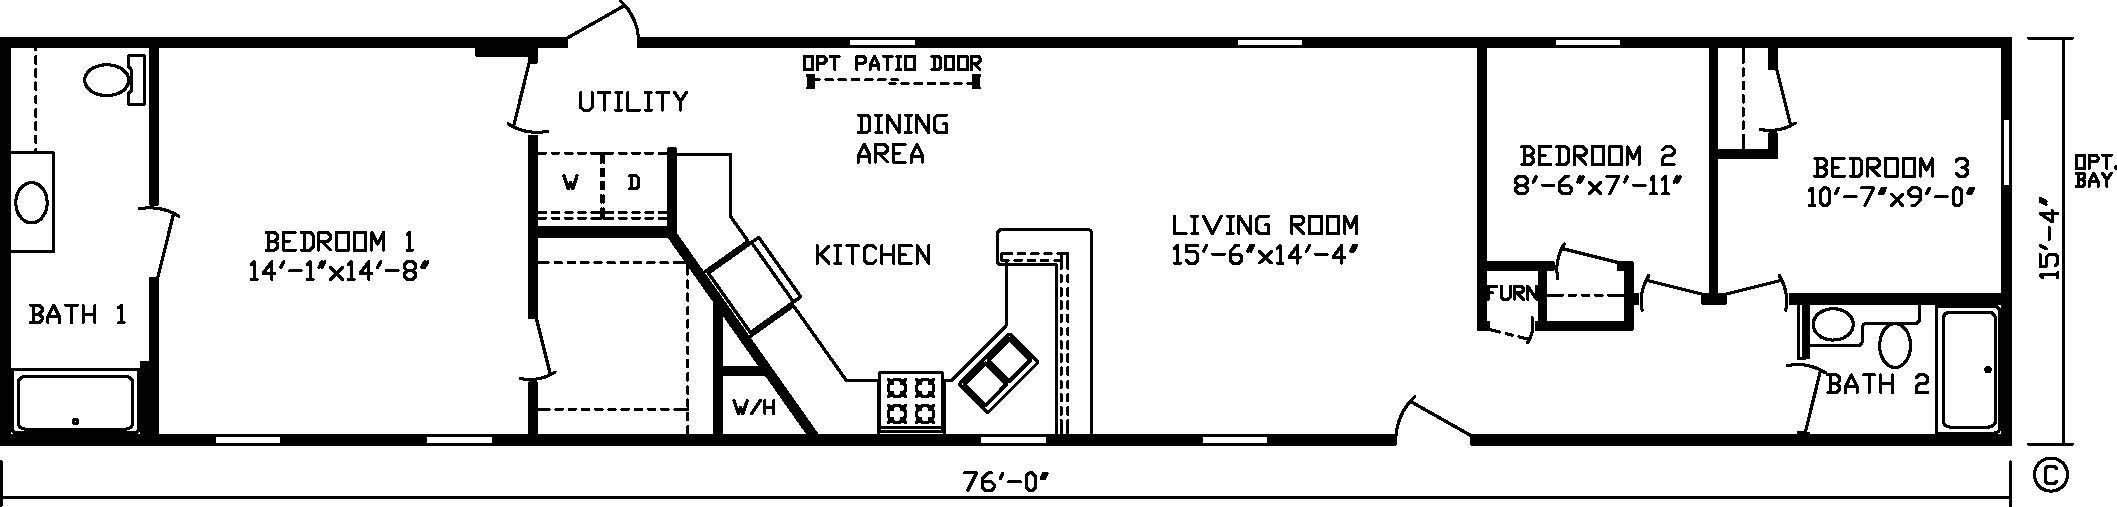 16 x 80 mobile home floor plans floor plans pinterest tiny 16 x 80 mobile home floor plans floor plans pinterest tiny houses and house